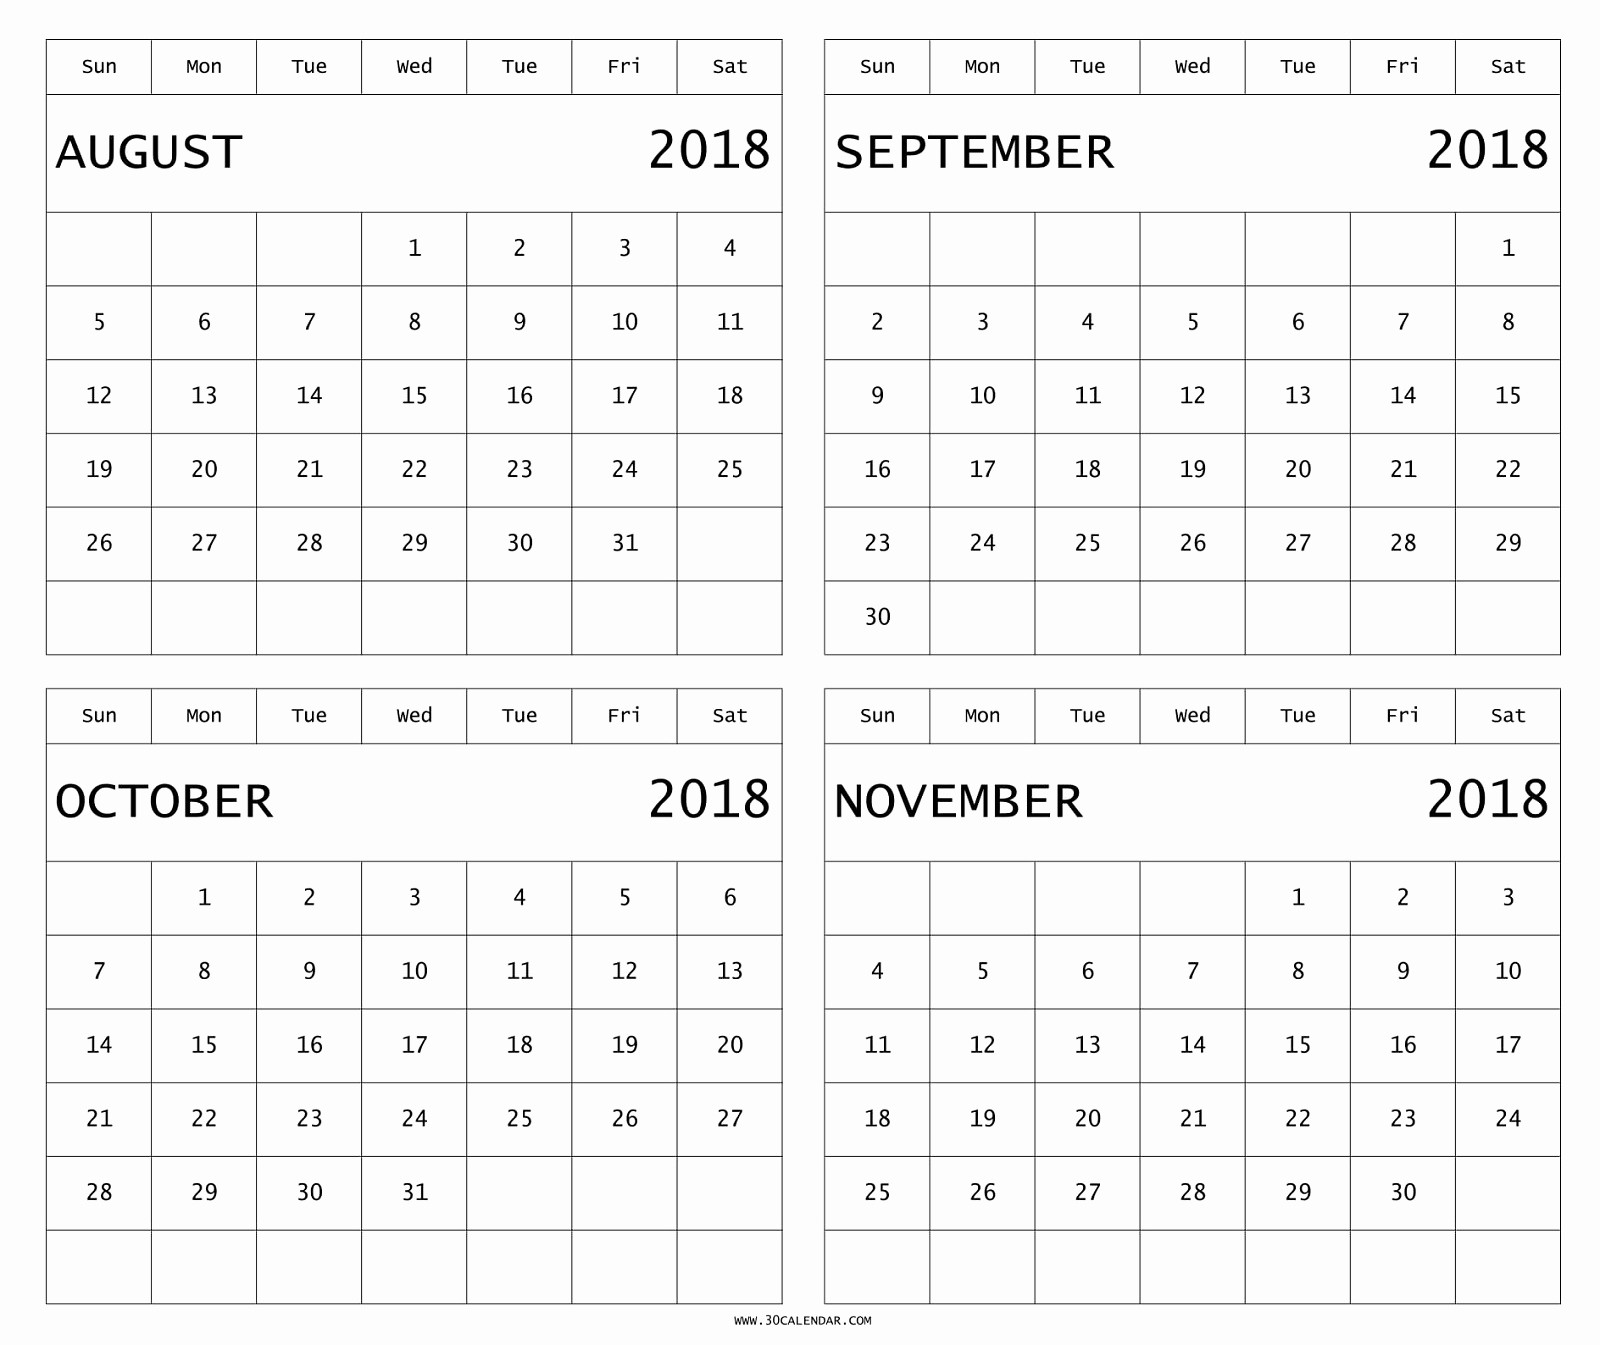 2018 Four Month Calendar Template Unique August to November 2018 Calendar Printable Four Months